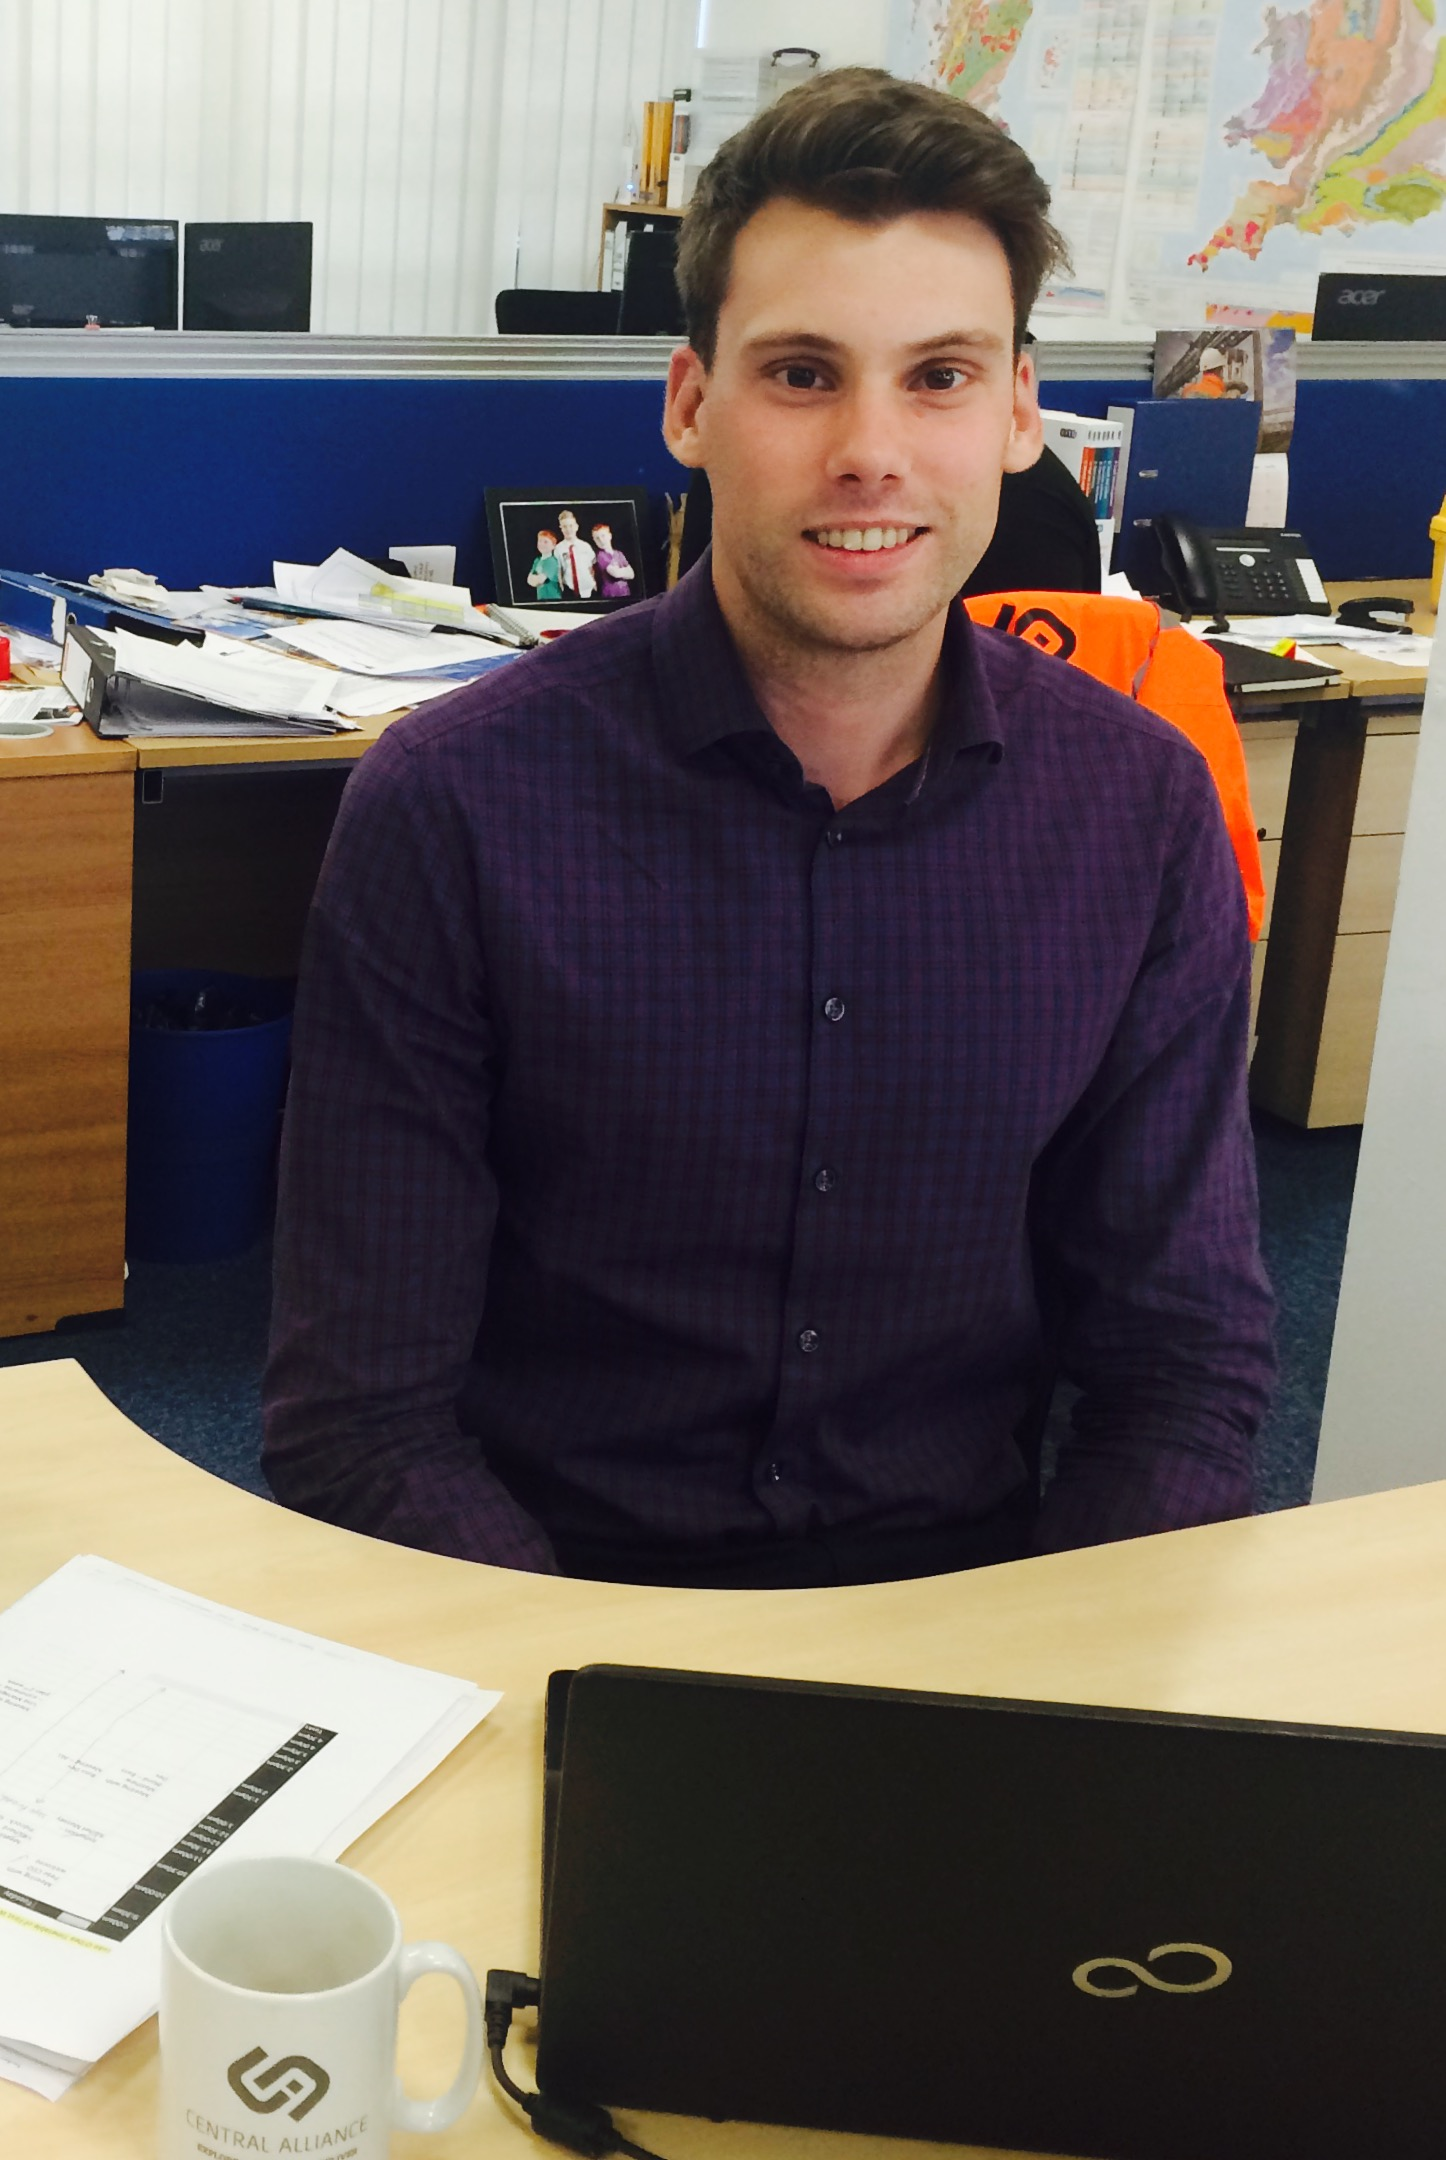 Luke O'Dea Bussiness Development Manager